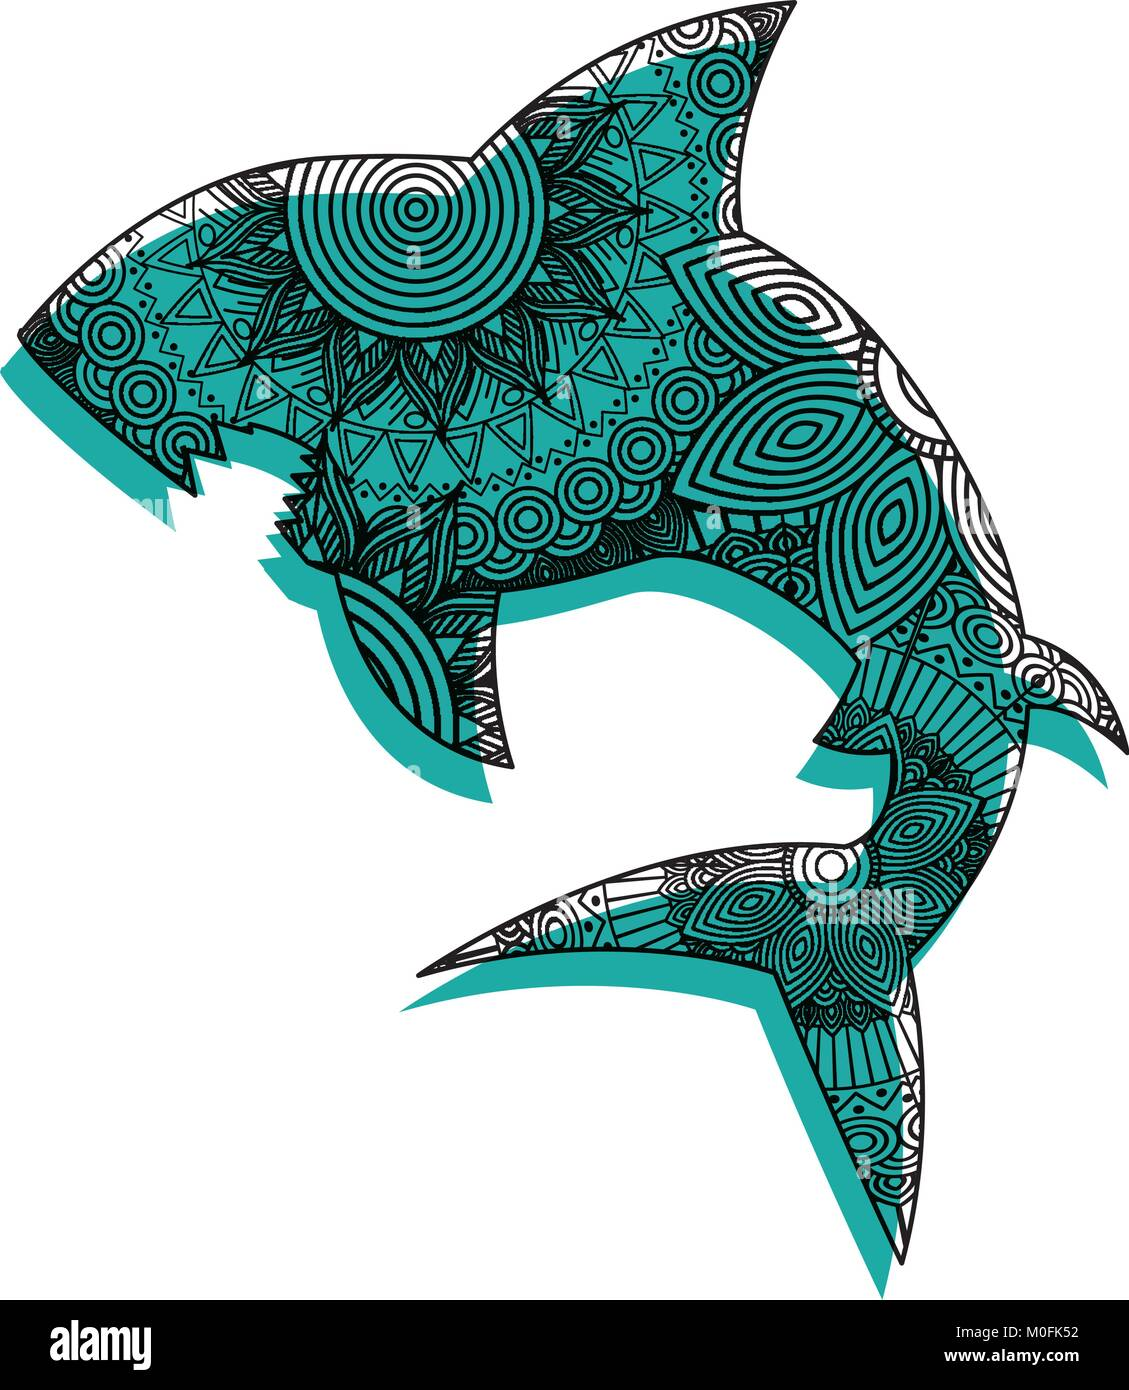 33 Free Shark Coloring Pages Printable | 1390x1129